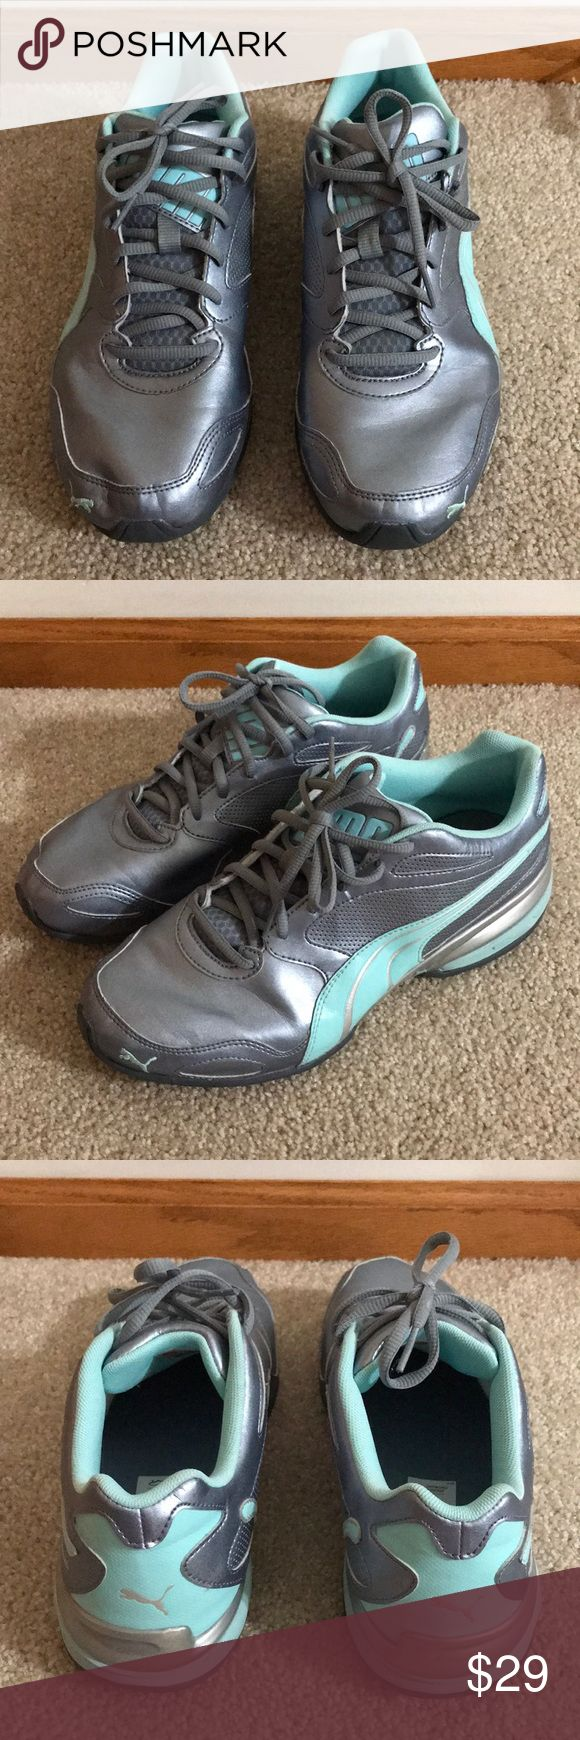 Women's Puma Running Shoes Silver/Aqua 10 Used Women's Puma Aqua and Silver Running Shoes Size 10.  Great condition, wore a few times and are too small for my post pregnancy feet. Puma Shoes Athletic Shoes